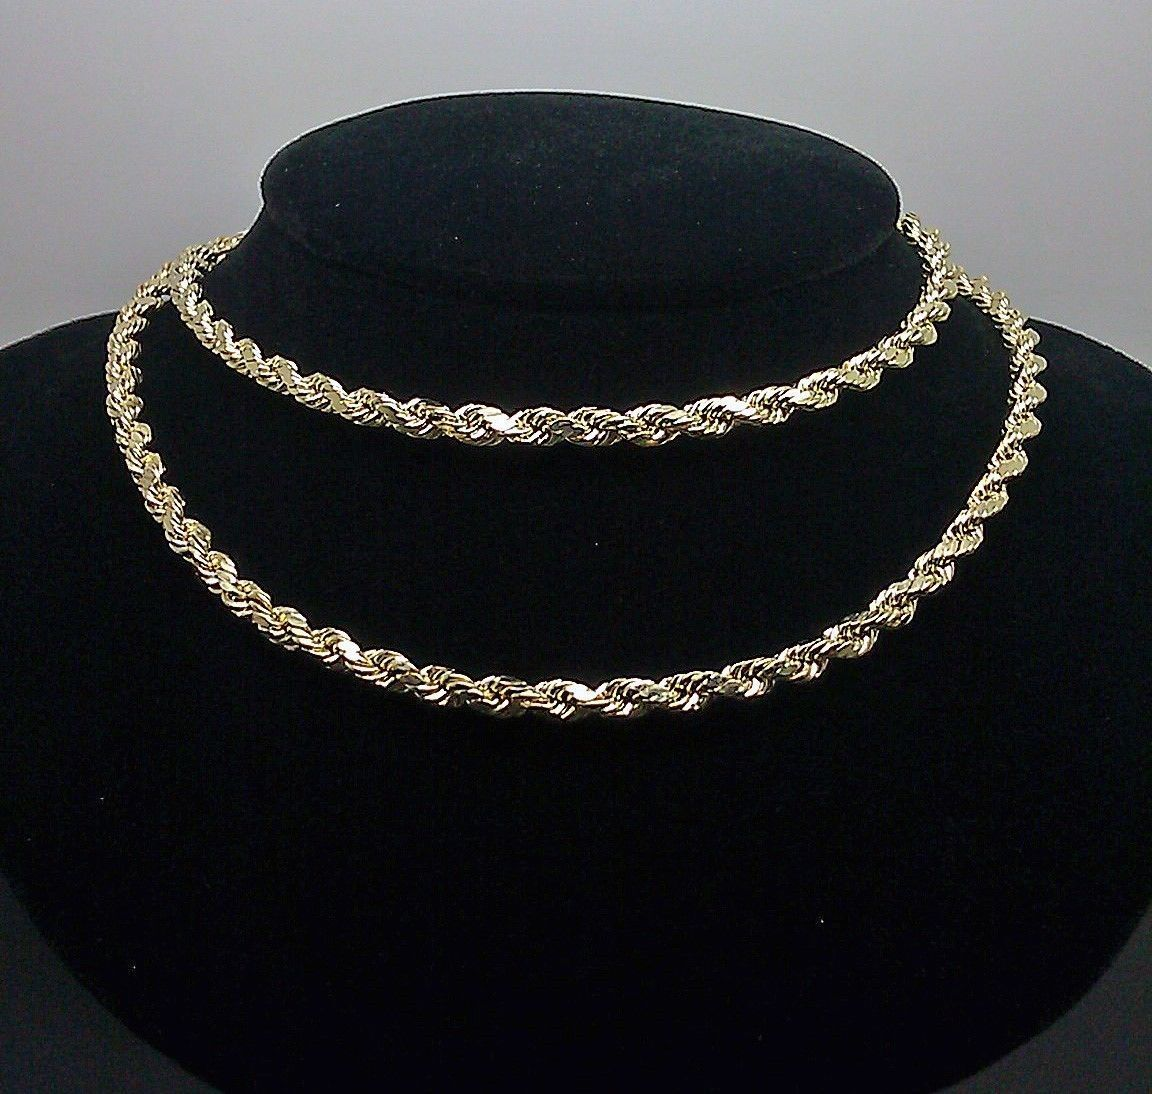 10k Gold Rope Chain 2 - 8 mm 16 Inch-30 Inch men women Necklace Diamond cut REAL 1